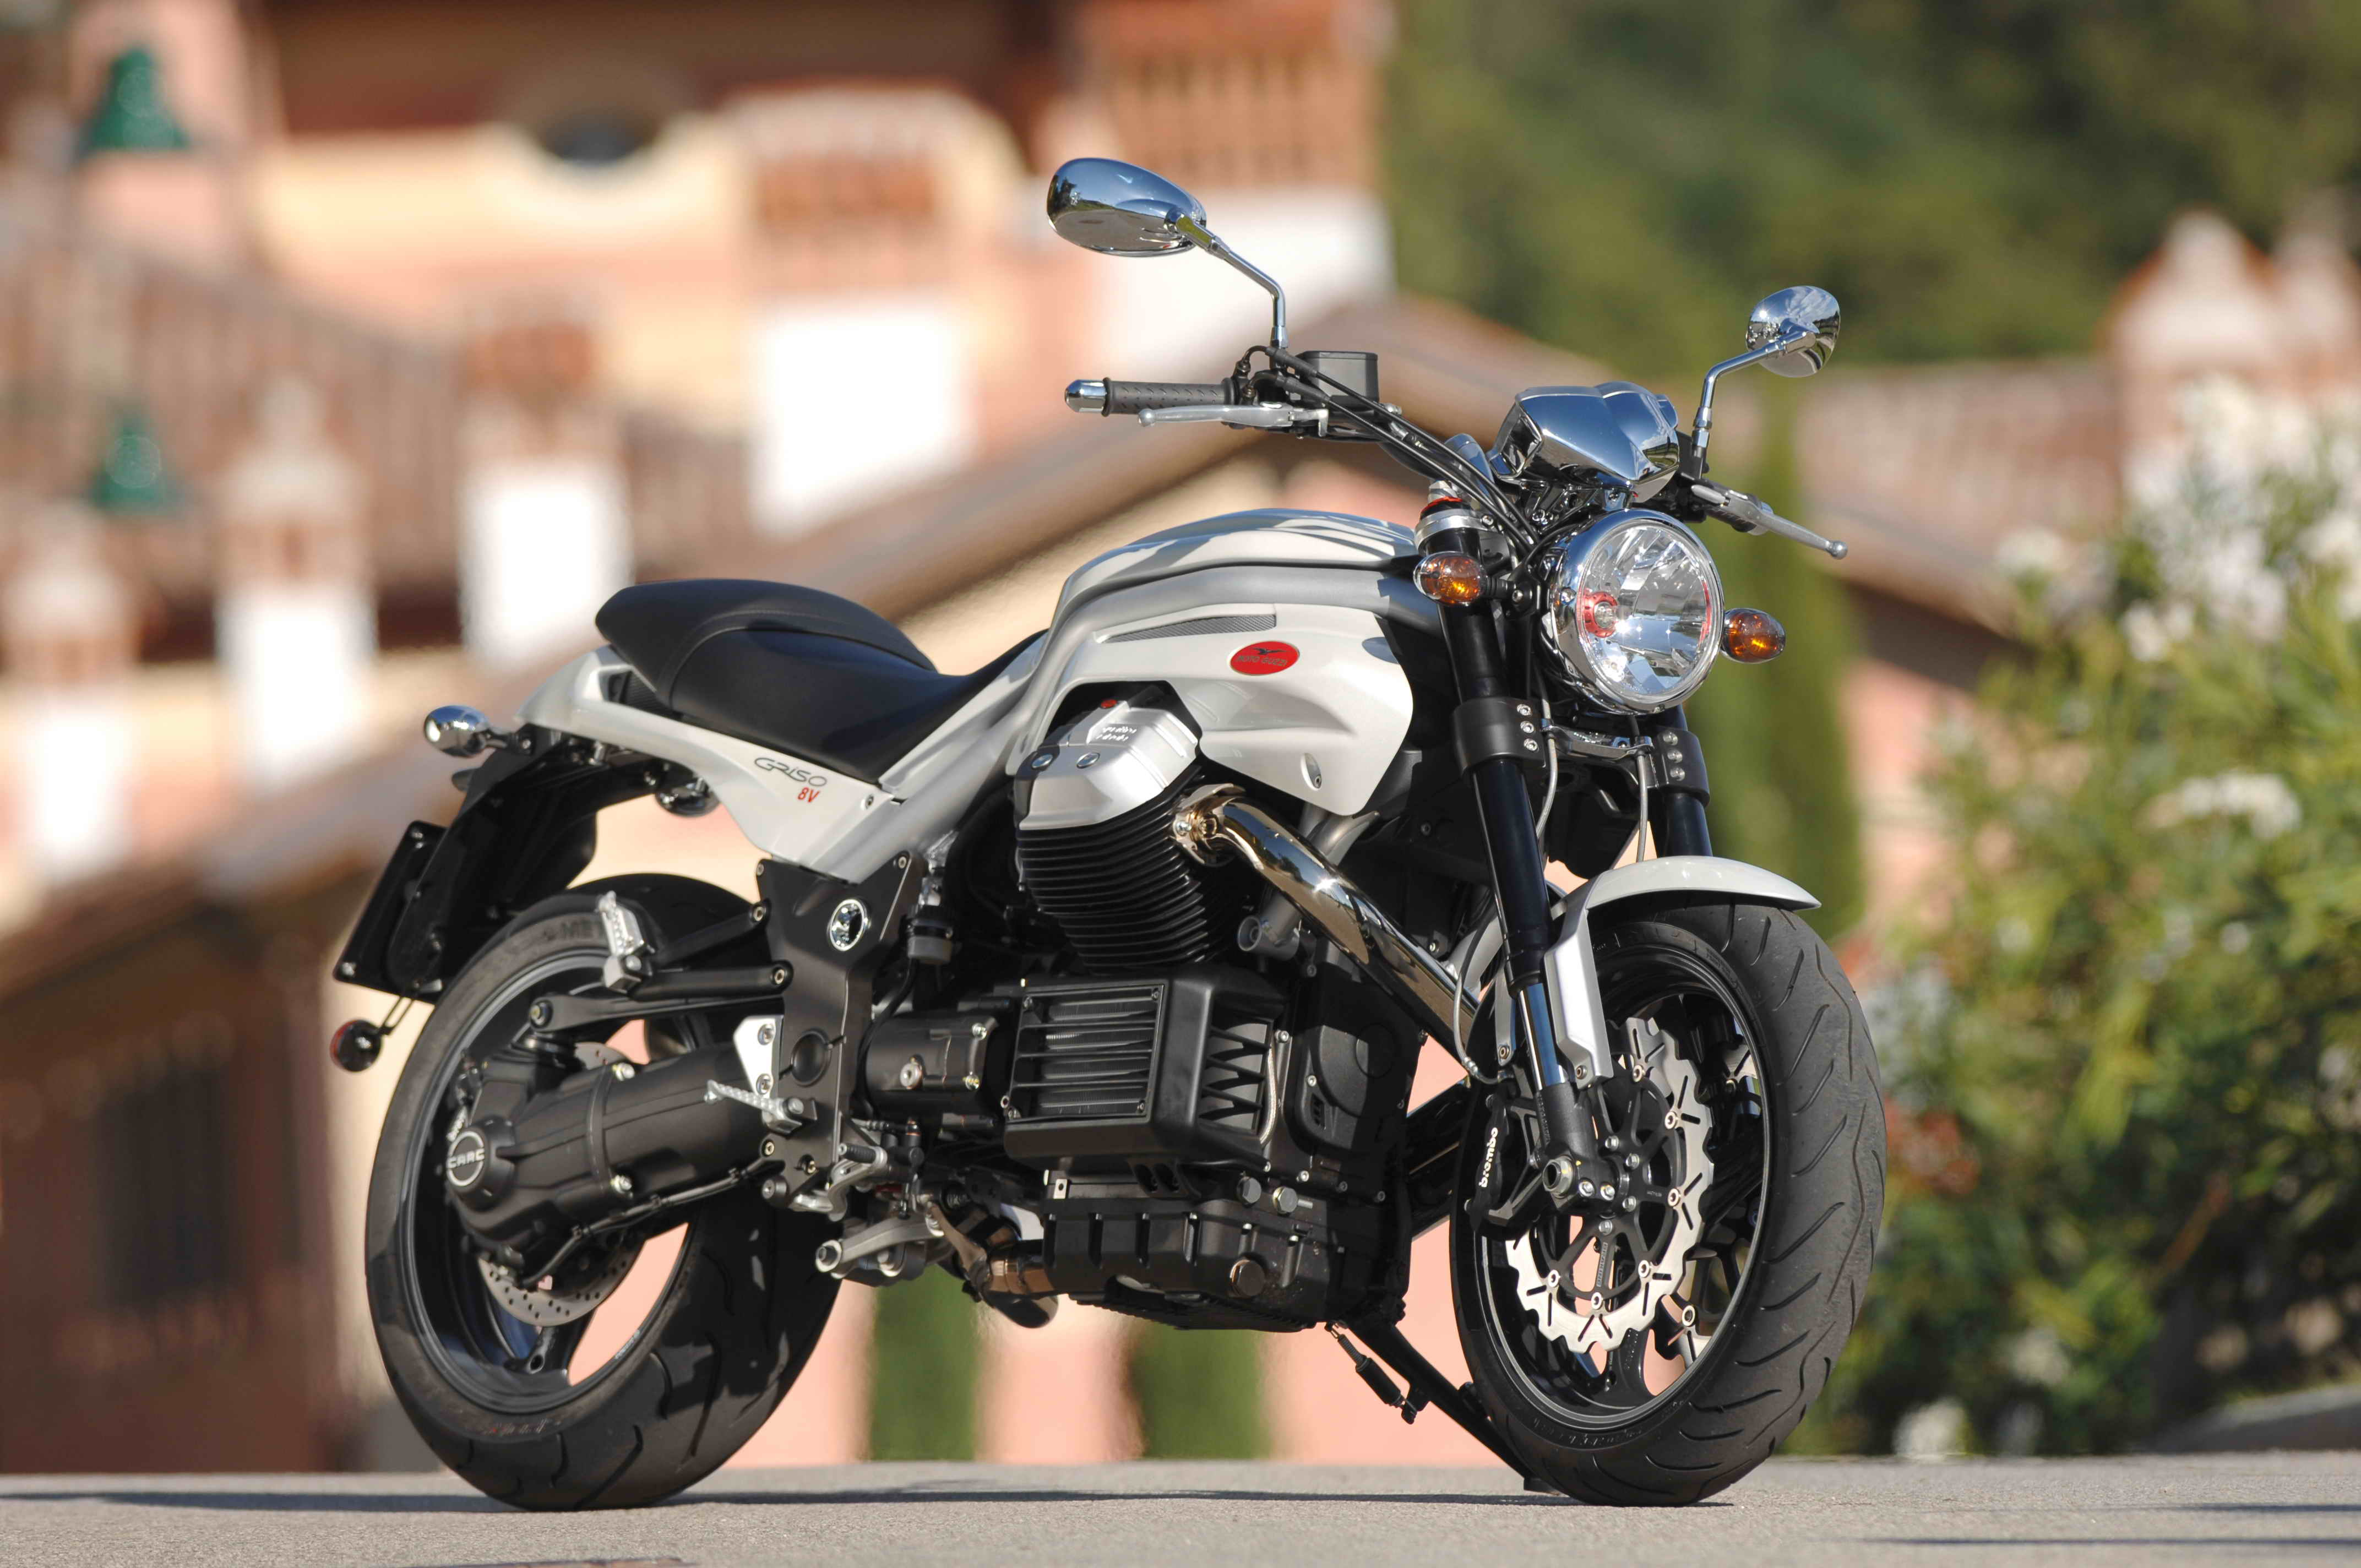 2008 moto guzzi griso 8v review gallery top speed. Black Bedroom Furniture Sets. Home Design Ideas